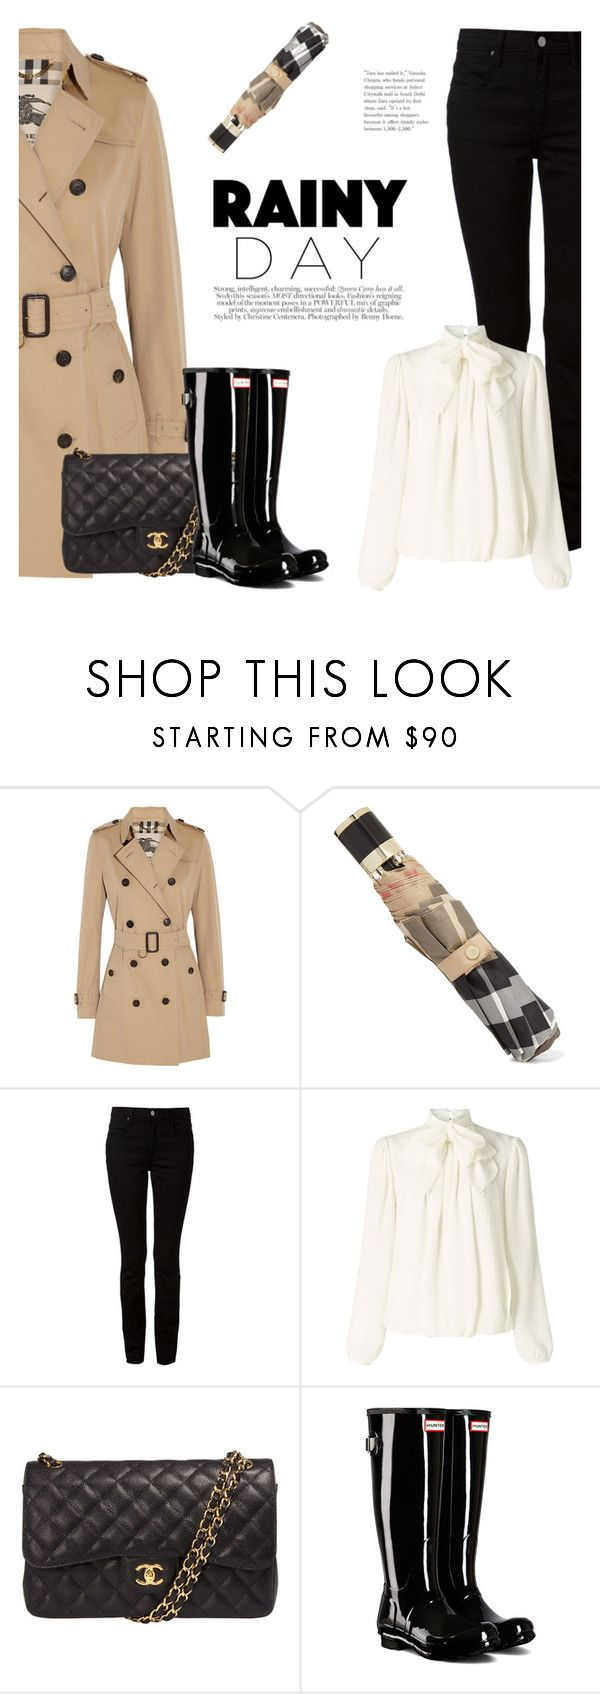 """Rainy Day Style"" by katsin90 ❤ liked on Polyvore featuring Burberry, T By Alexander Wang, Somerset by Alice Temperley, Chanel and Hunter"